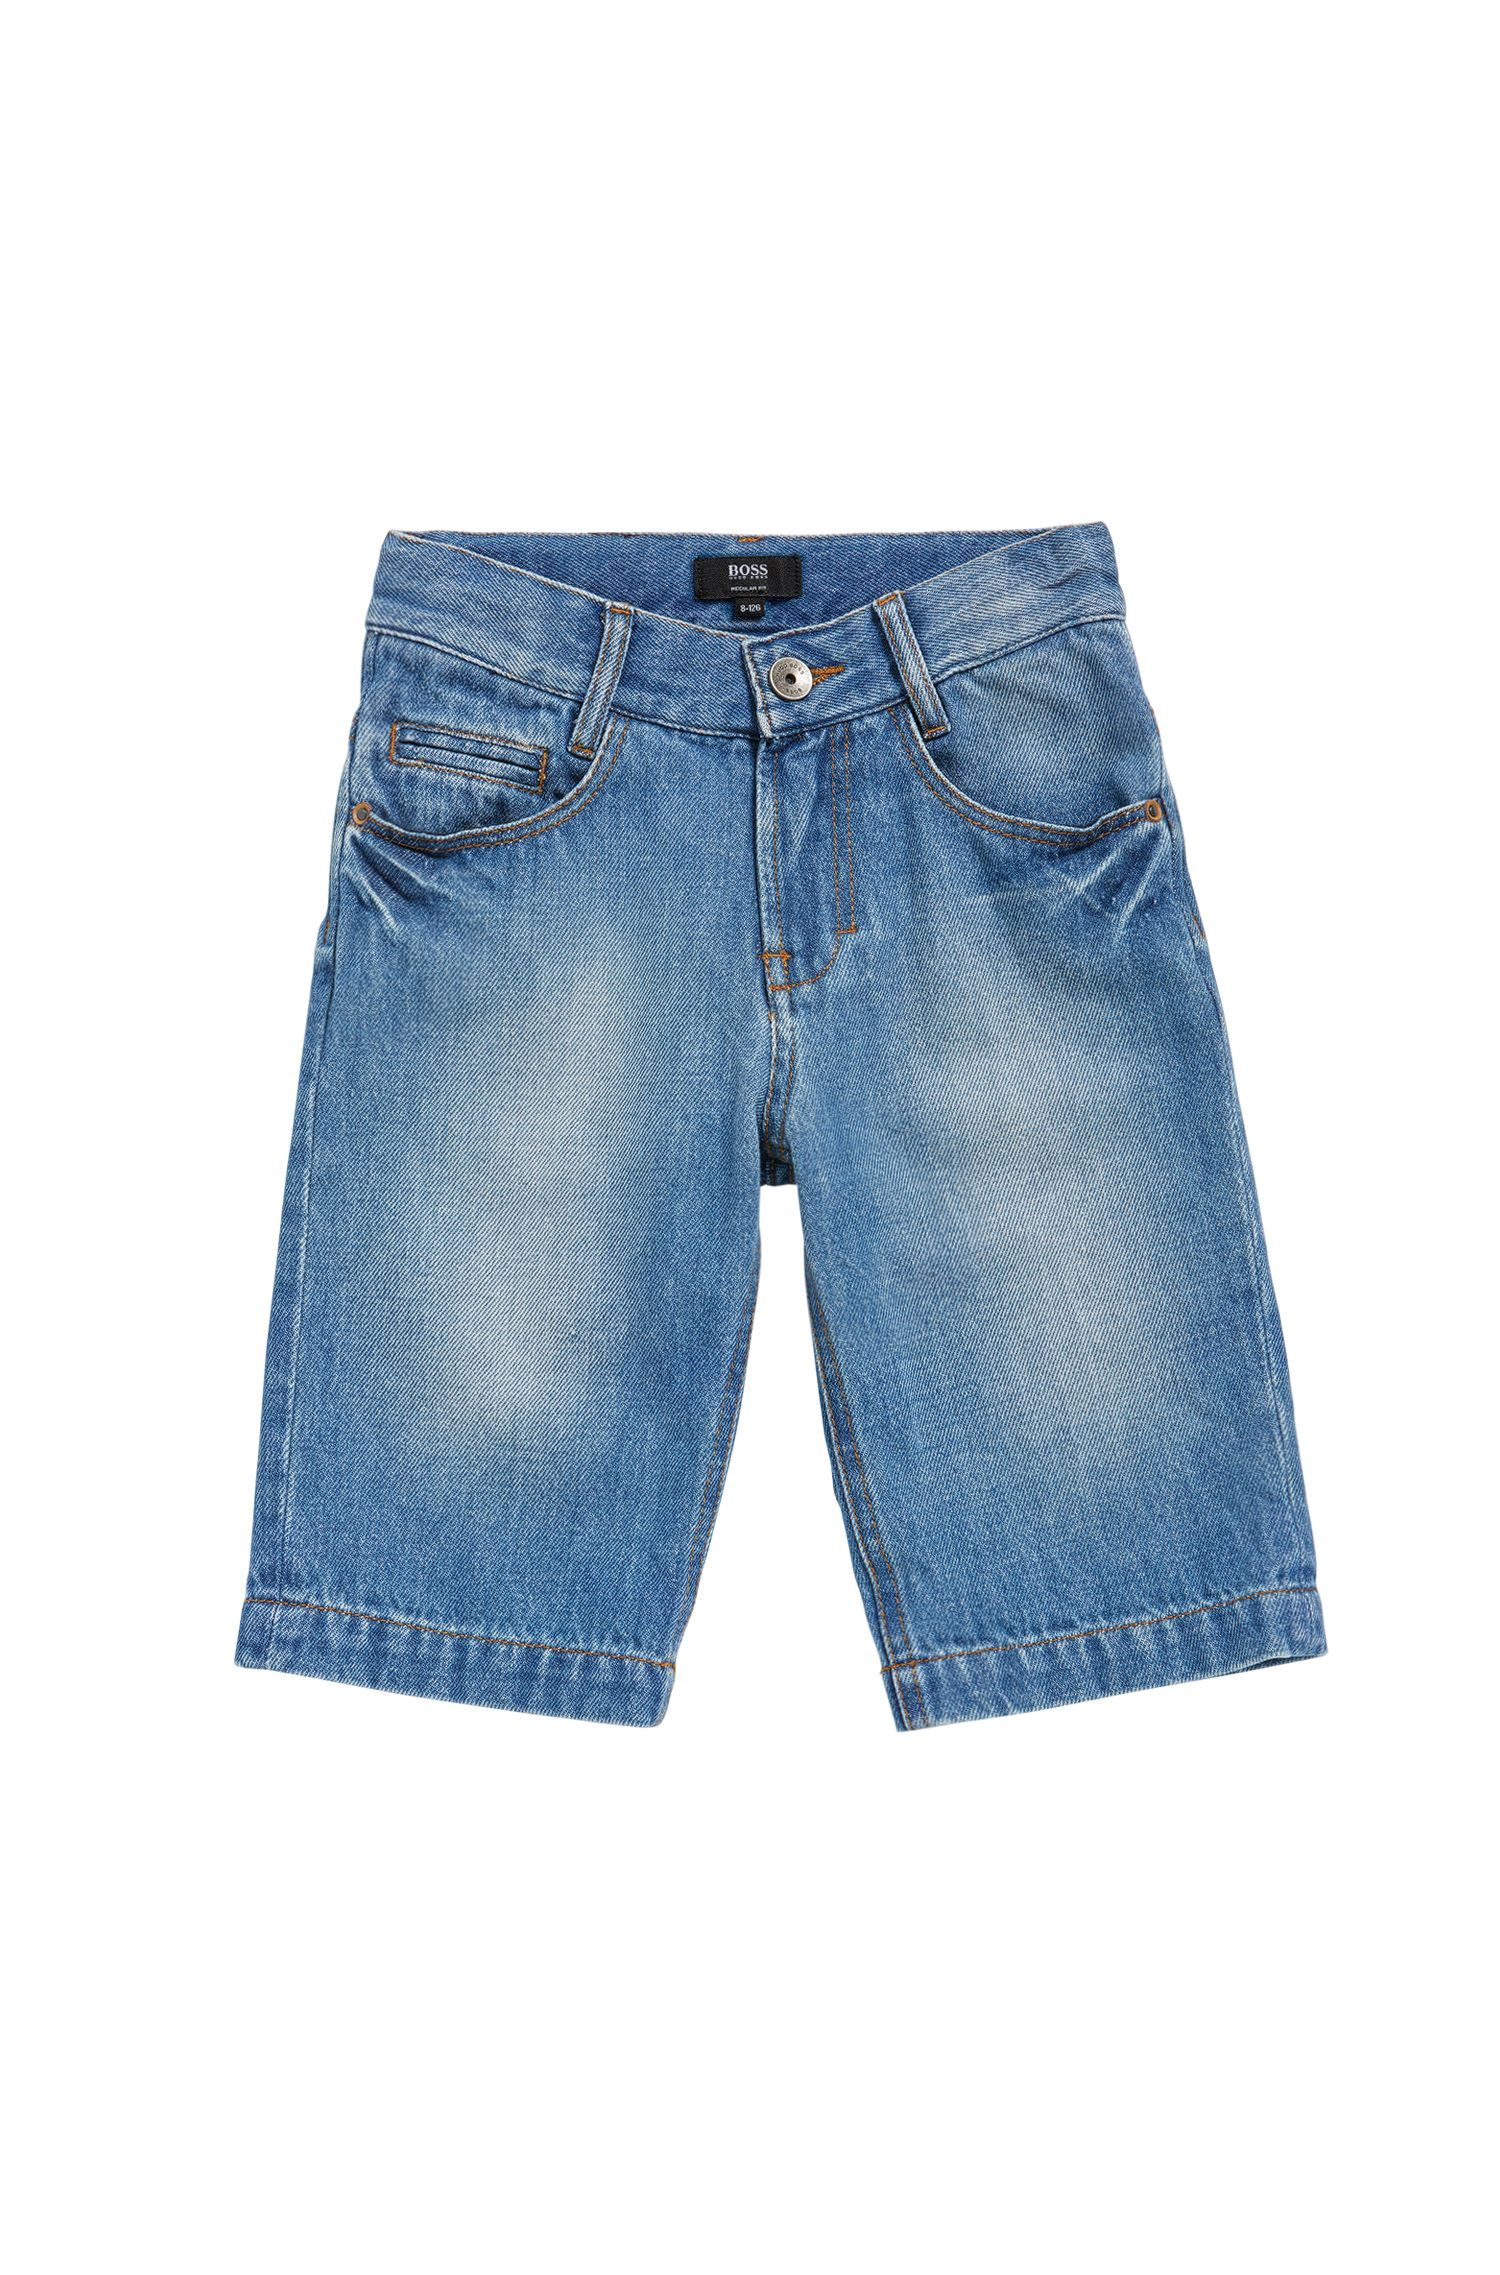 Kids' jeans shorts in cotton: 'J24490'